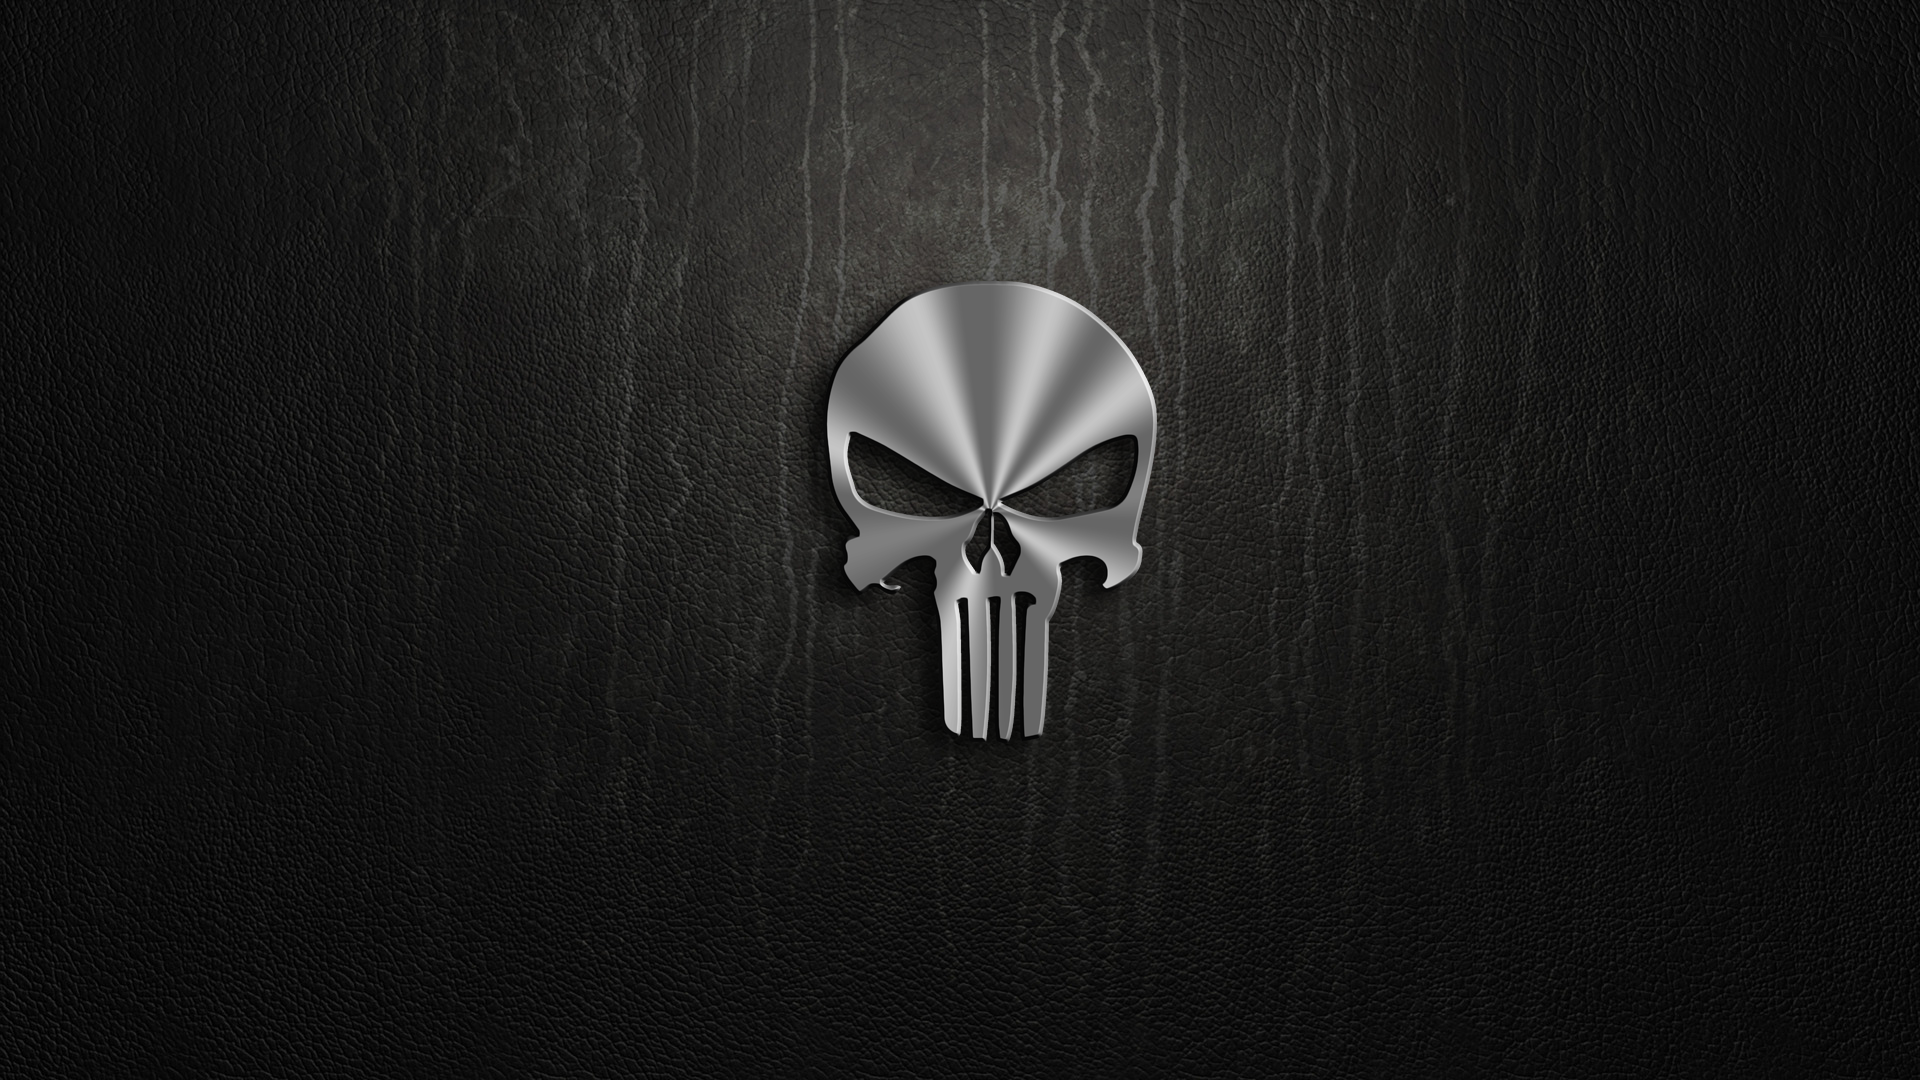 High Resolution Images CollPection: Punisher, by Rafael Besaw